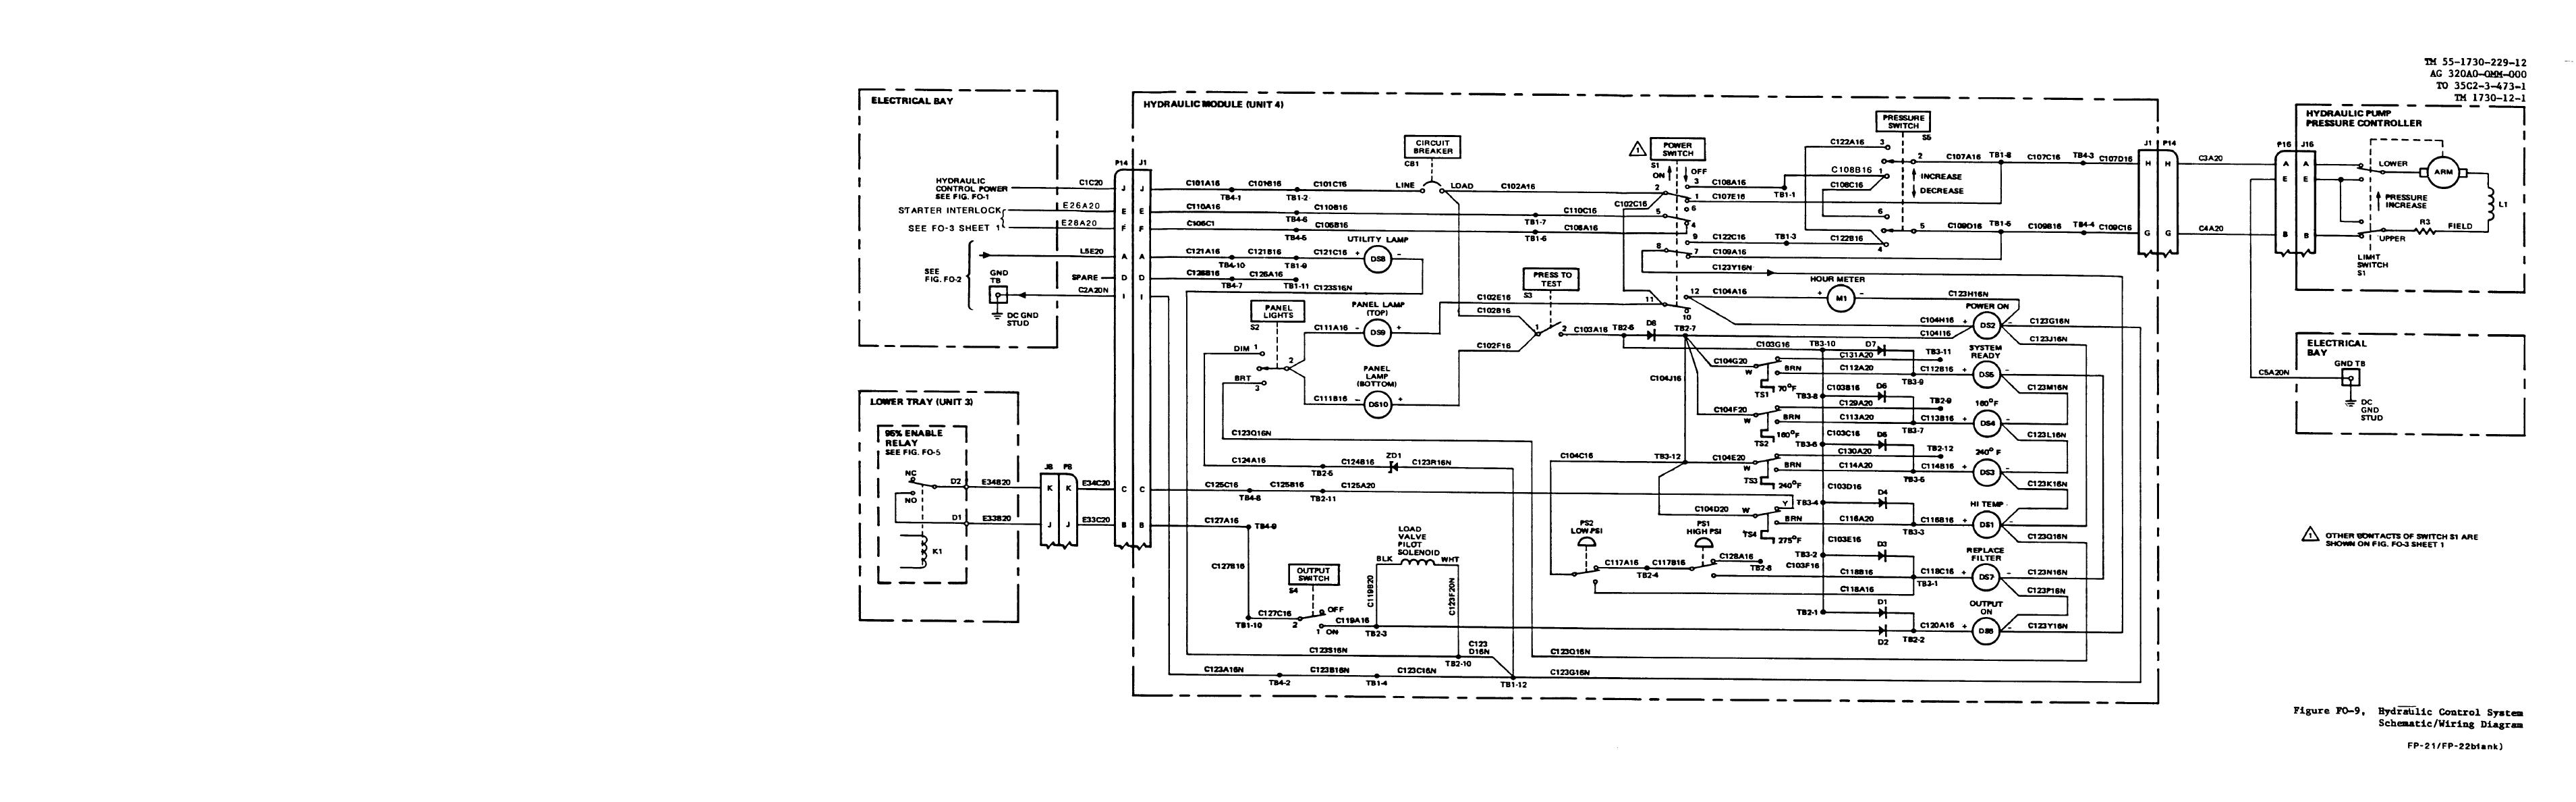 TM 55 1730 229 120552im figure fo 9 hydraulic control system schematic wiring diagram wiring diagram for access control system at soozxer.org